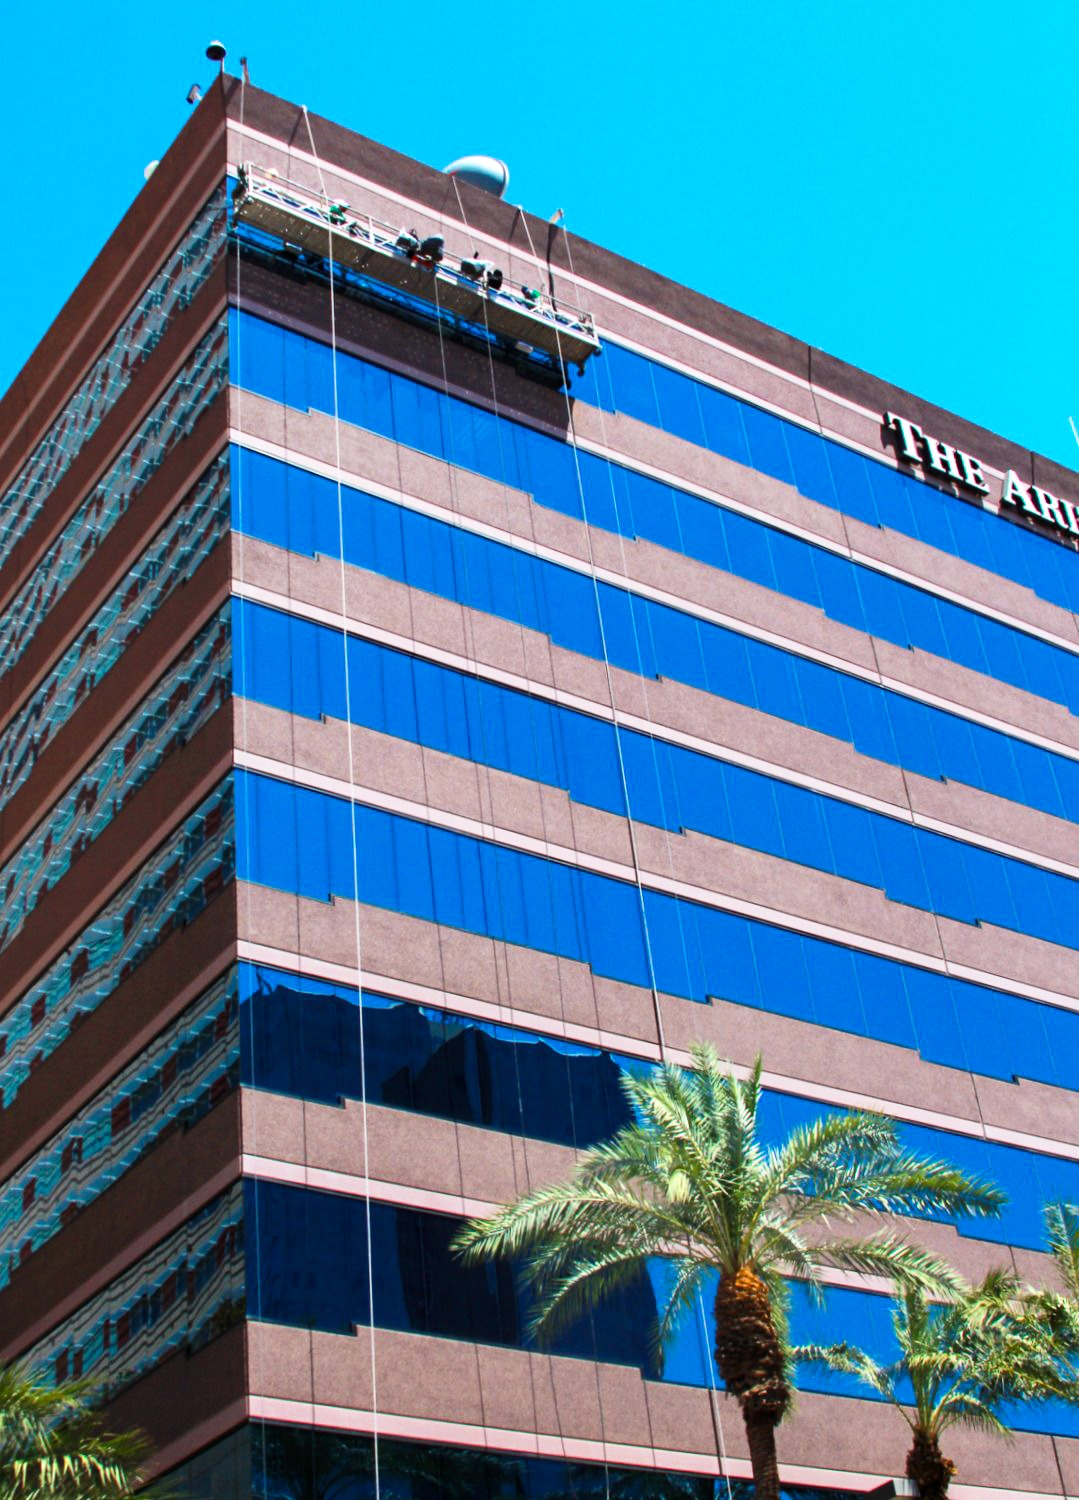 Presto techs on swing stage waterproofing the facade of a Phoenix, AZ high rise commercial office building